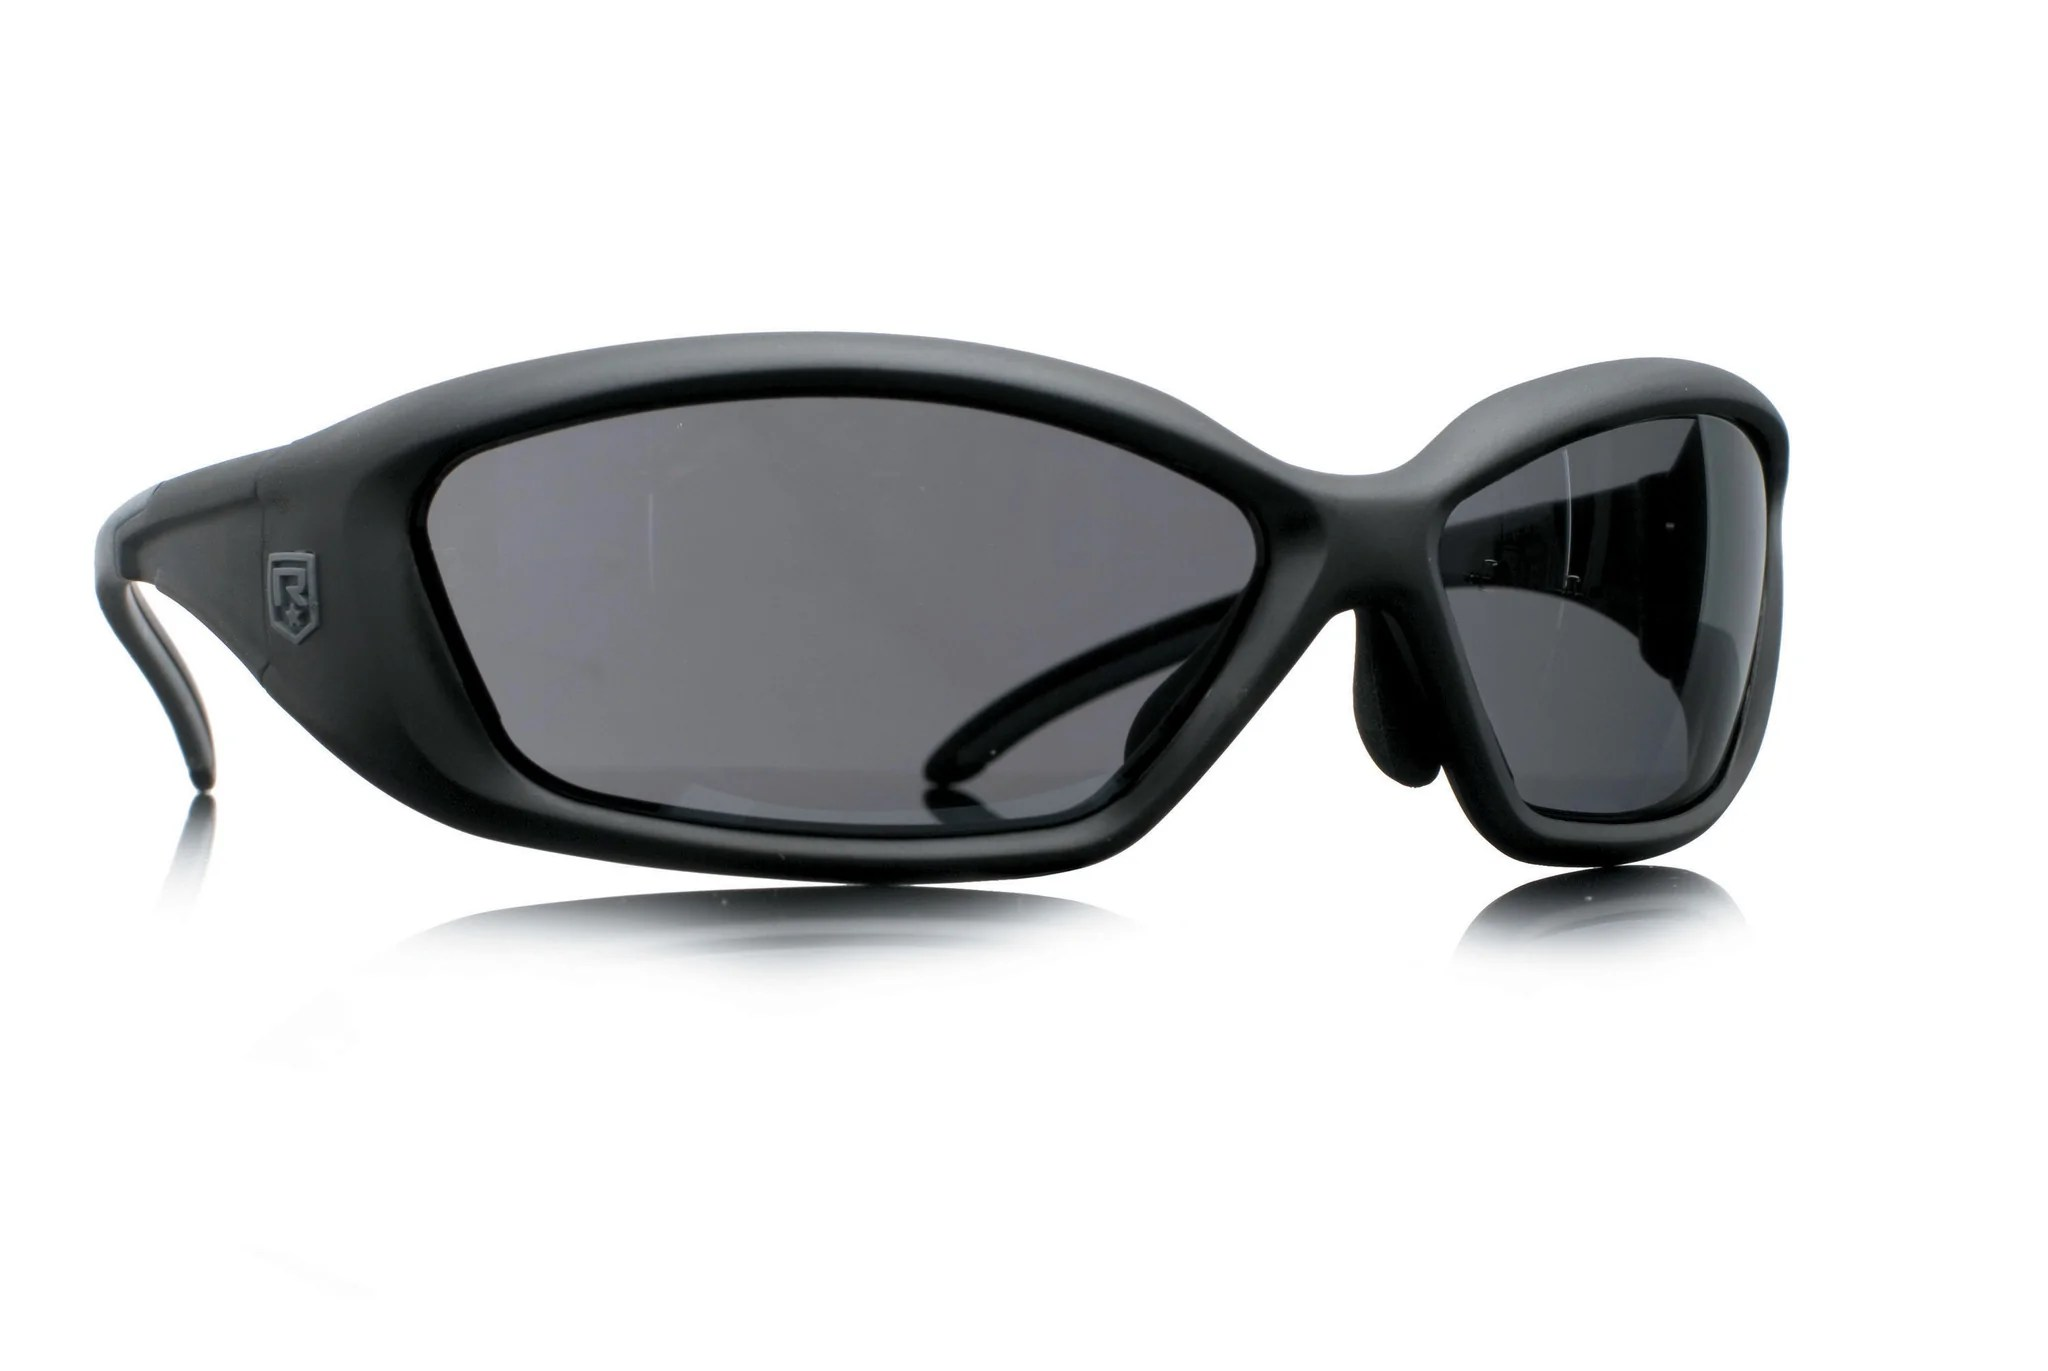 94b7467fcd25 Bulletproof Sunglasses for Bulletproof Riders  Revision Hellfly Ballistic  Sunglasses Review